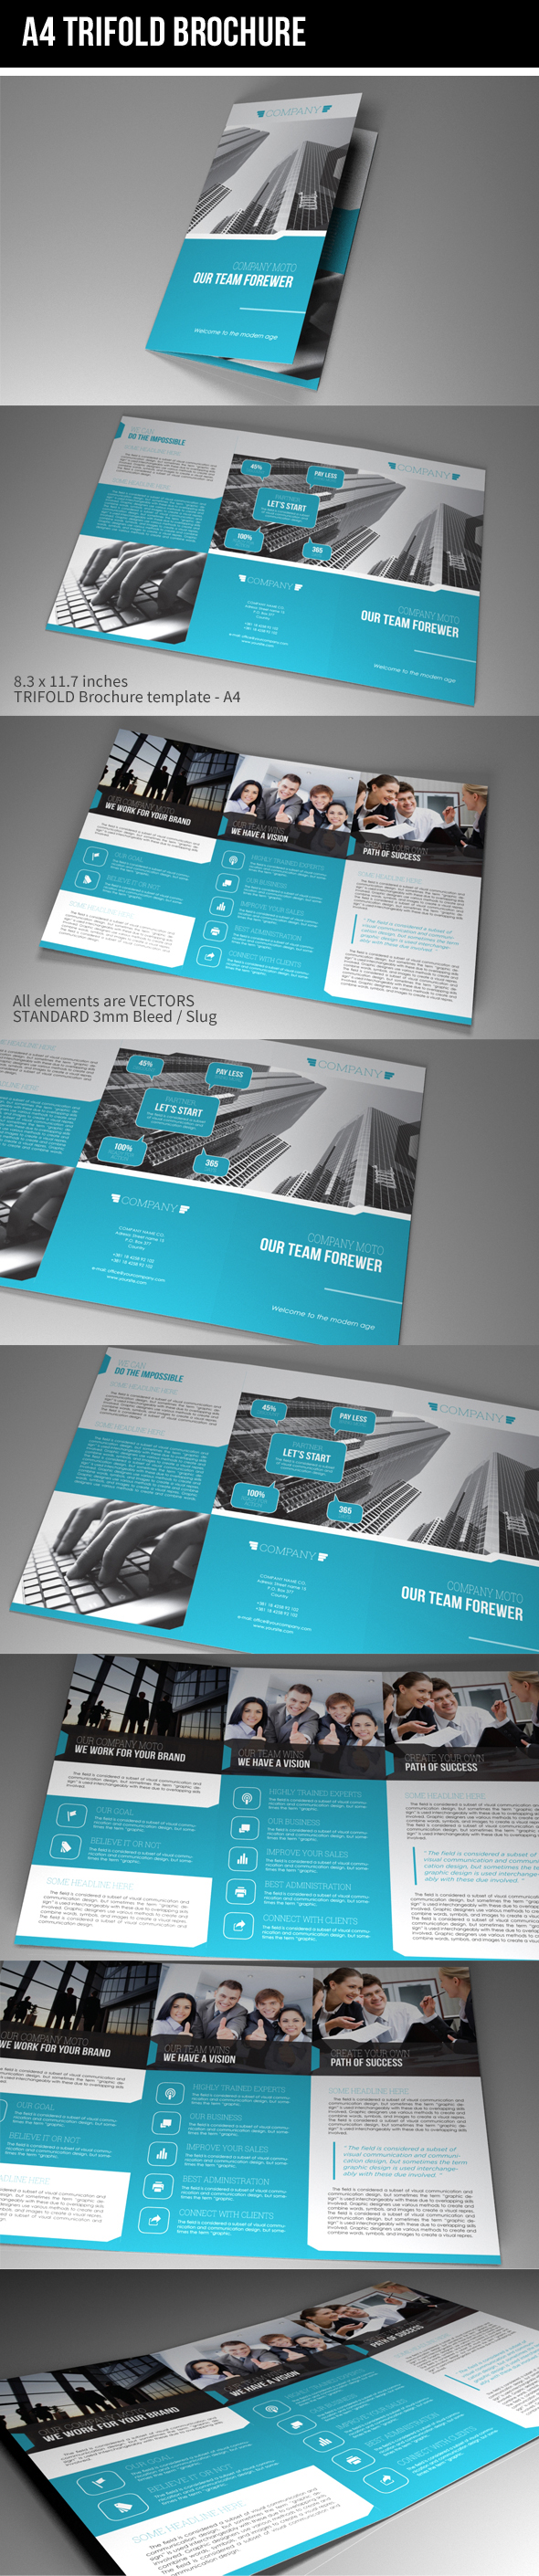 indesign template a4 trifold brochure on behance